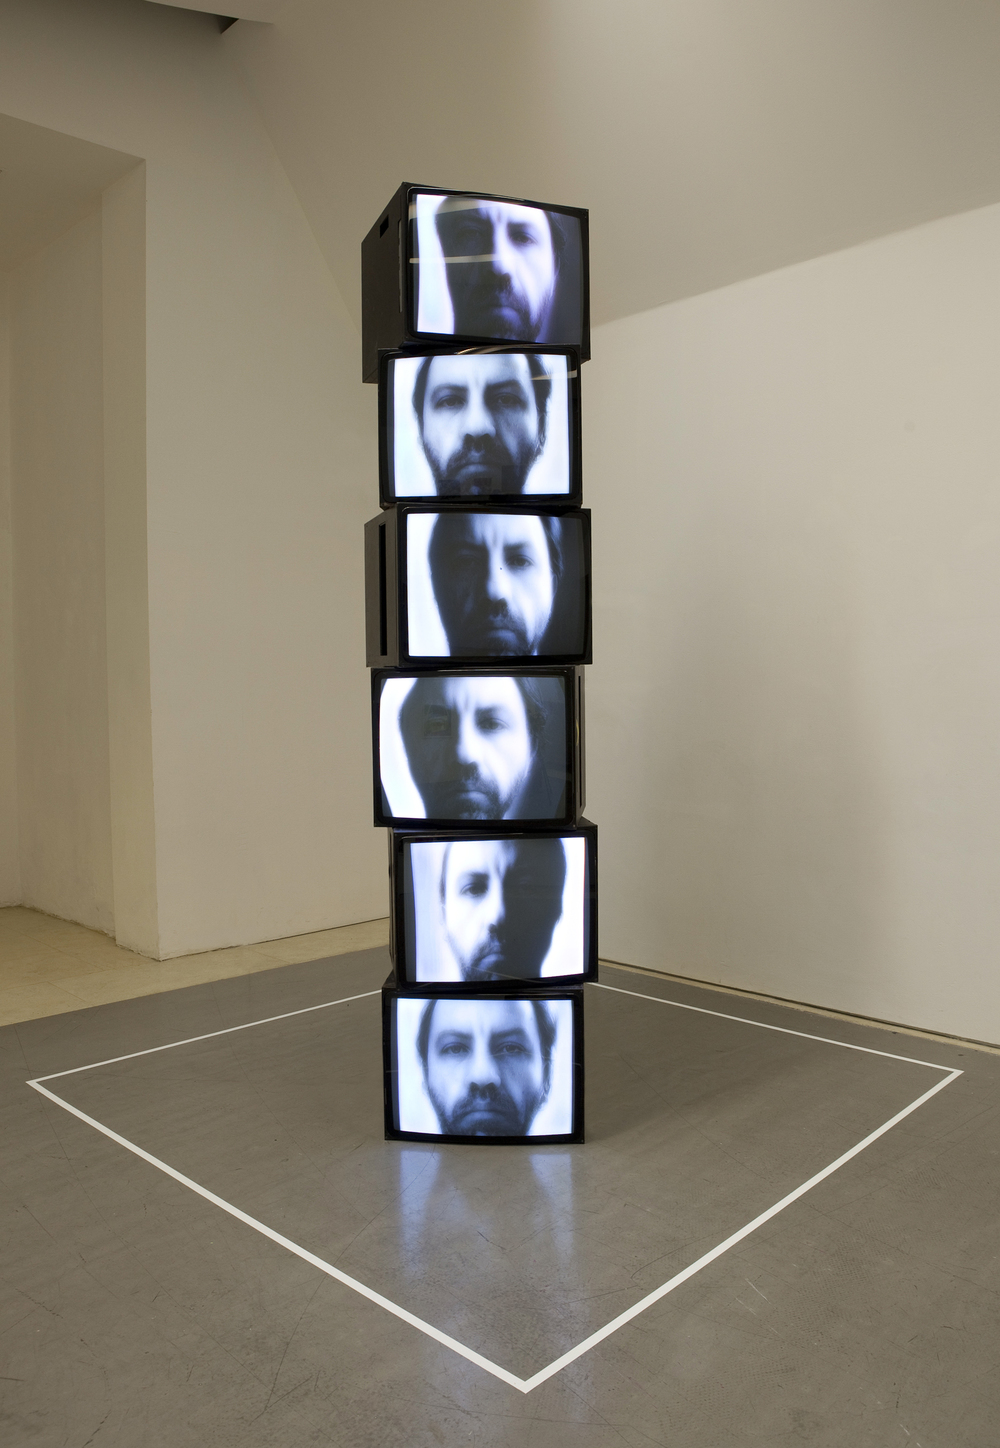 I AM MY PHOTOGRAPH, (2004/5),  time offset continuous video loops, CRT monitors, stereo audio , WICC IMB WICC, St James Cavalier Centre for Creativity, Valletta, Malta, 2012